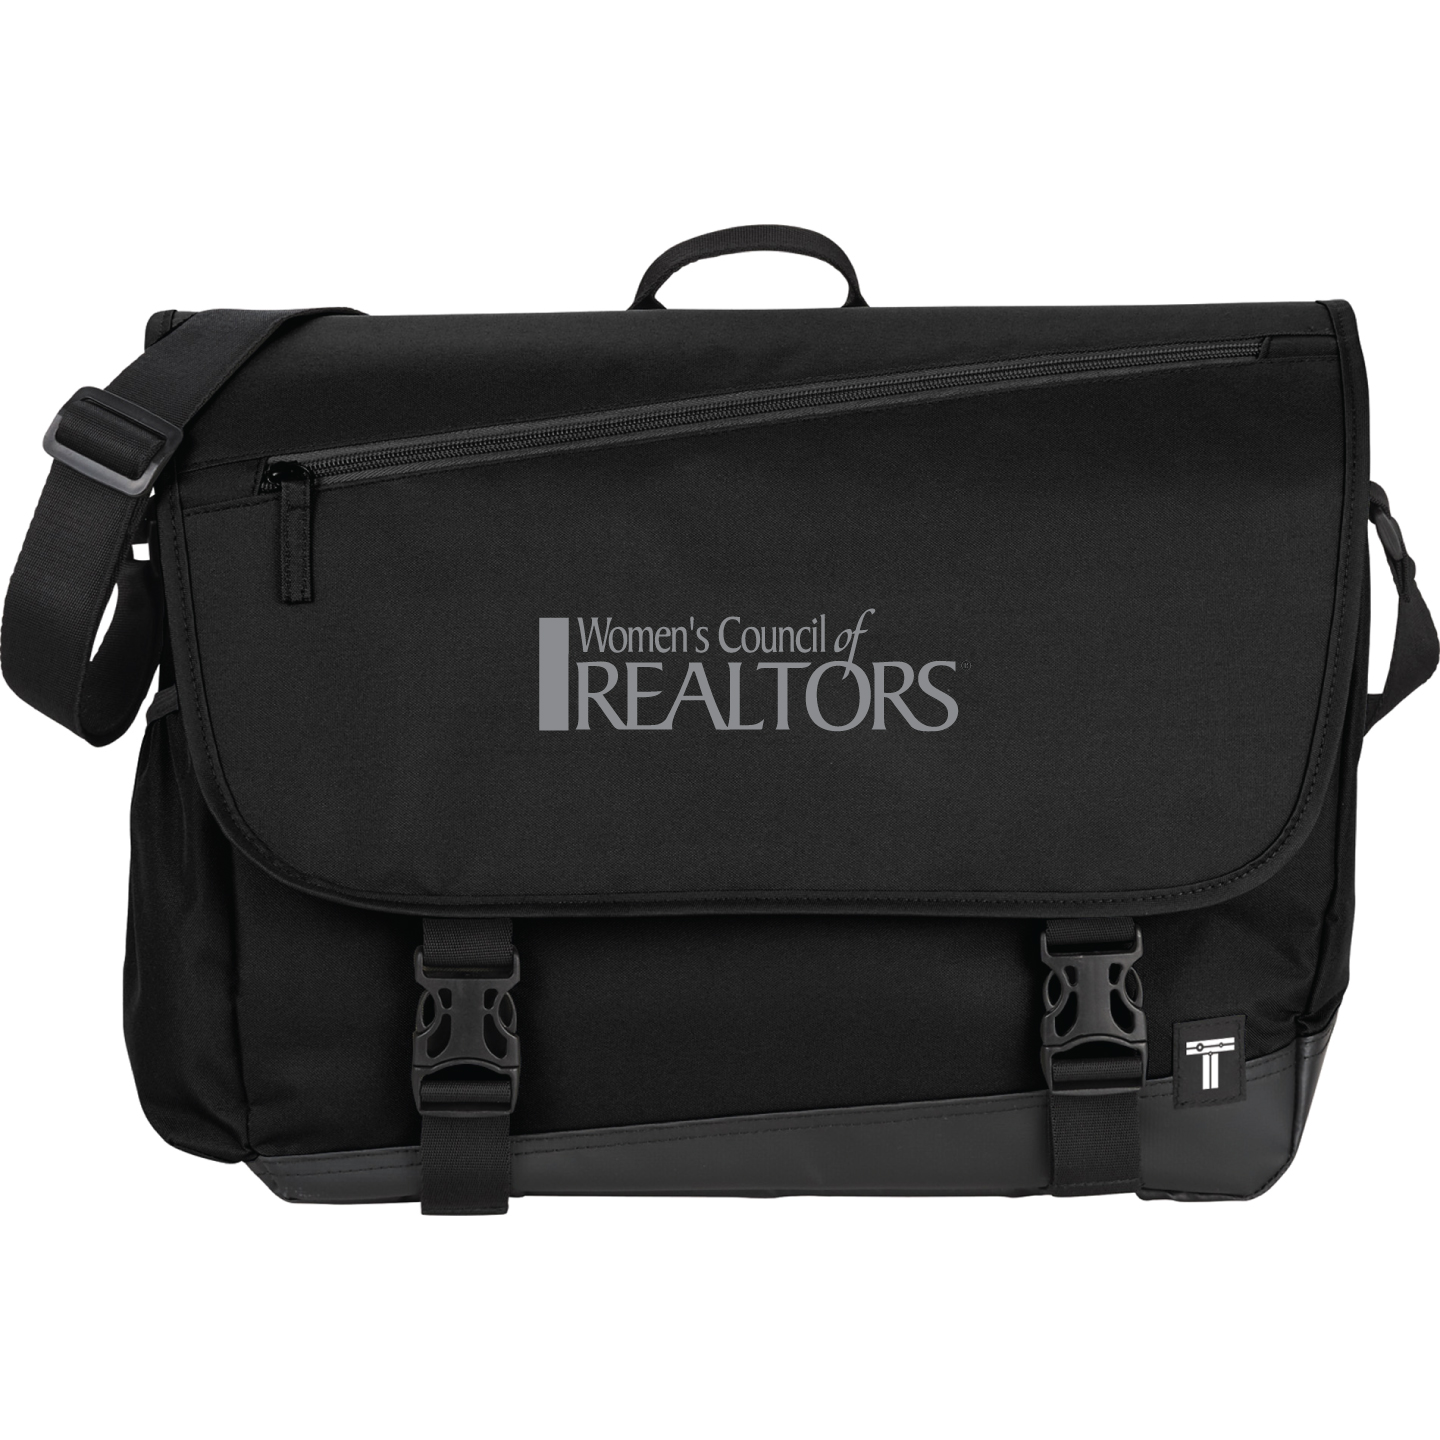 WCR Tranzip Messenger Bag - WCR4694